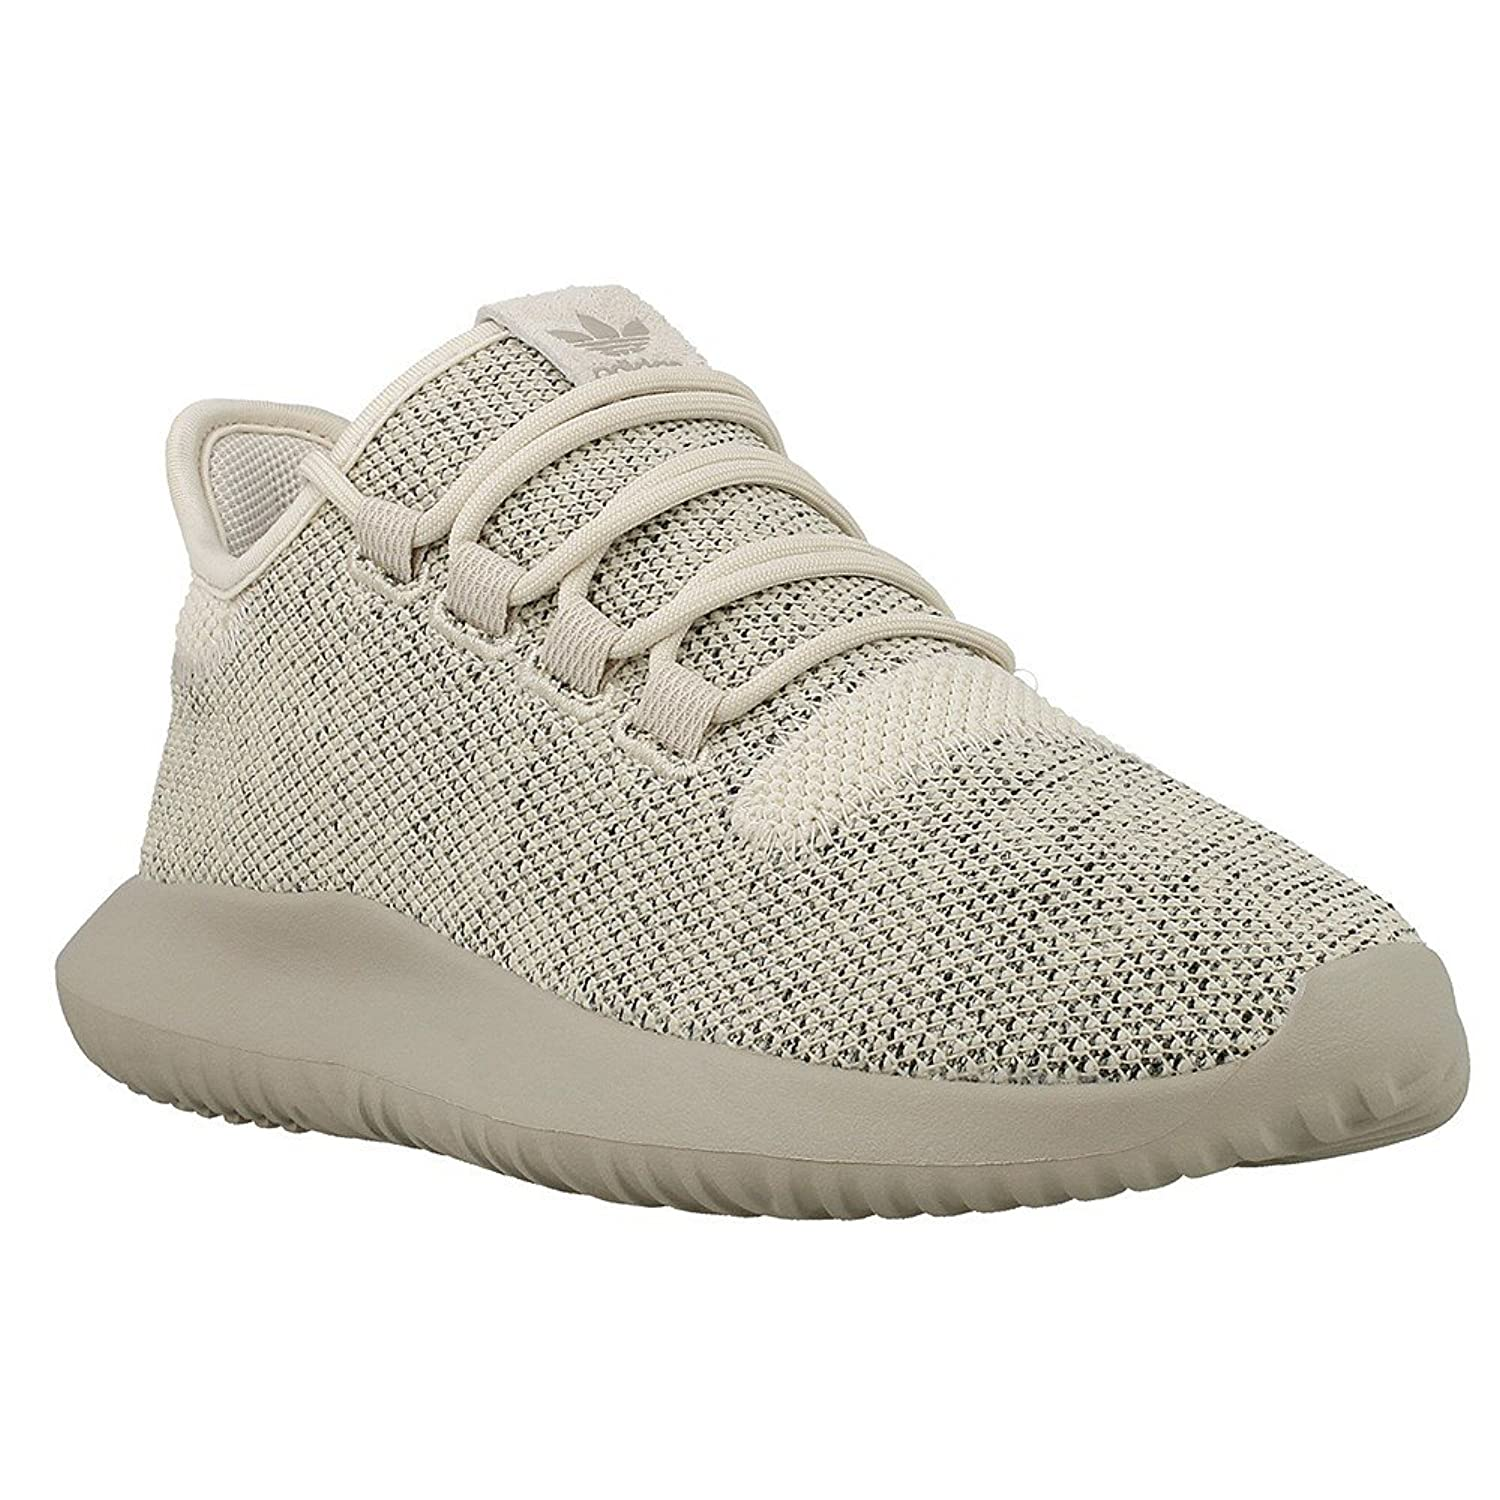 Adidas Originals Tubular Shadow Boys 'Toddler Kids